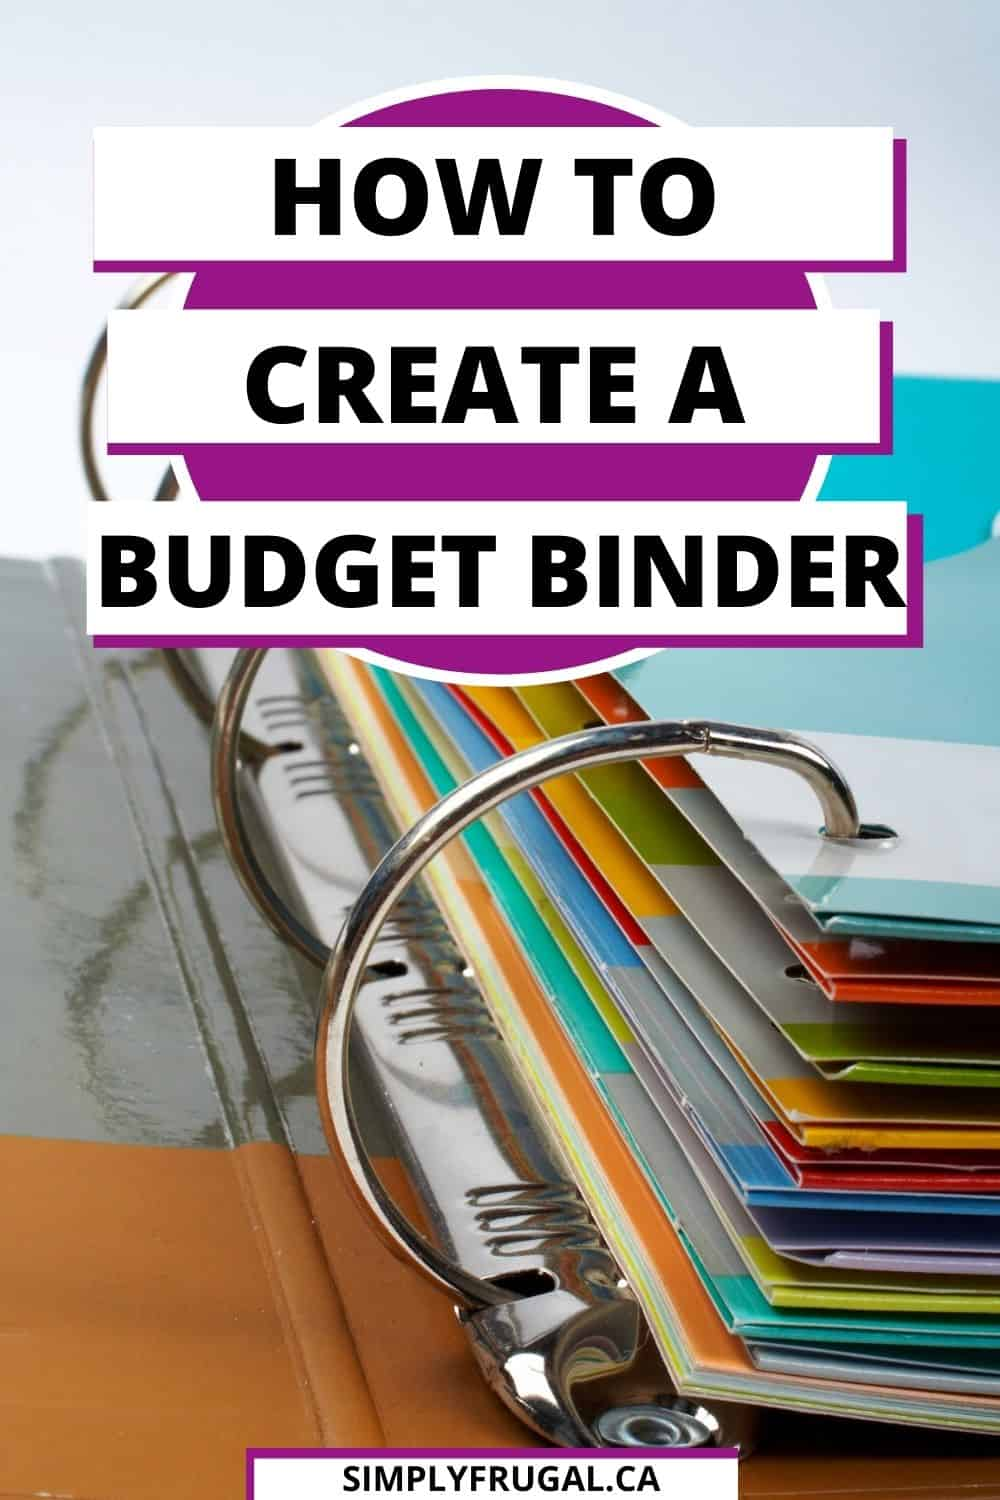 How to create a budget binder